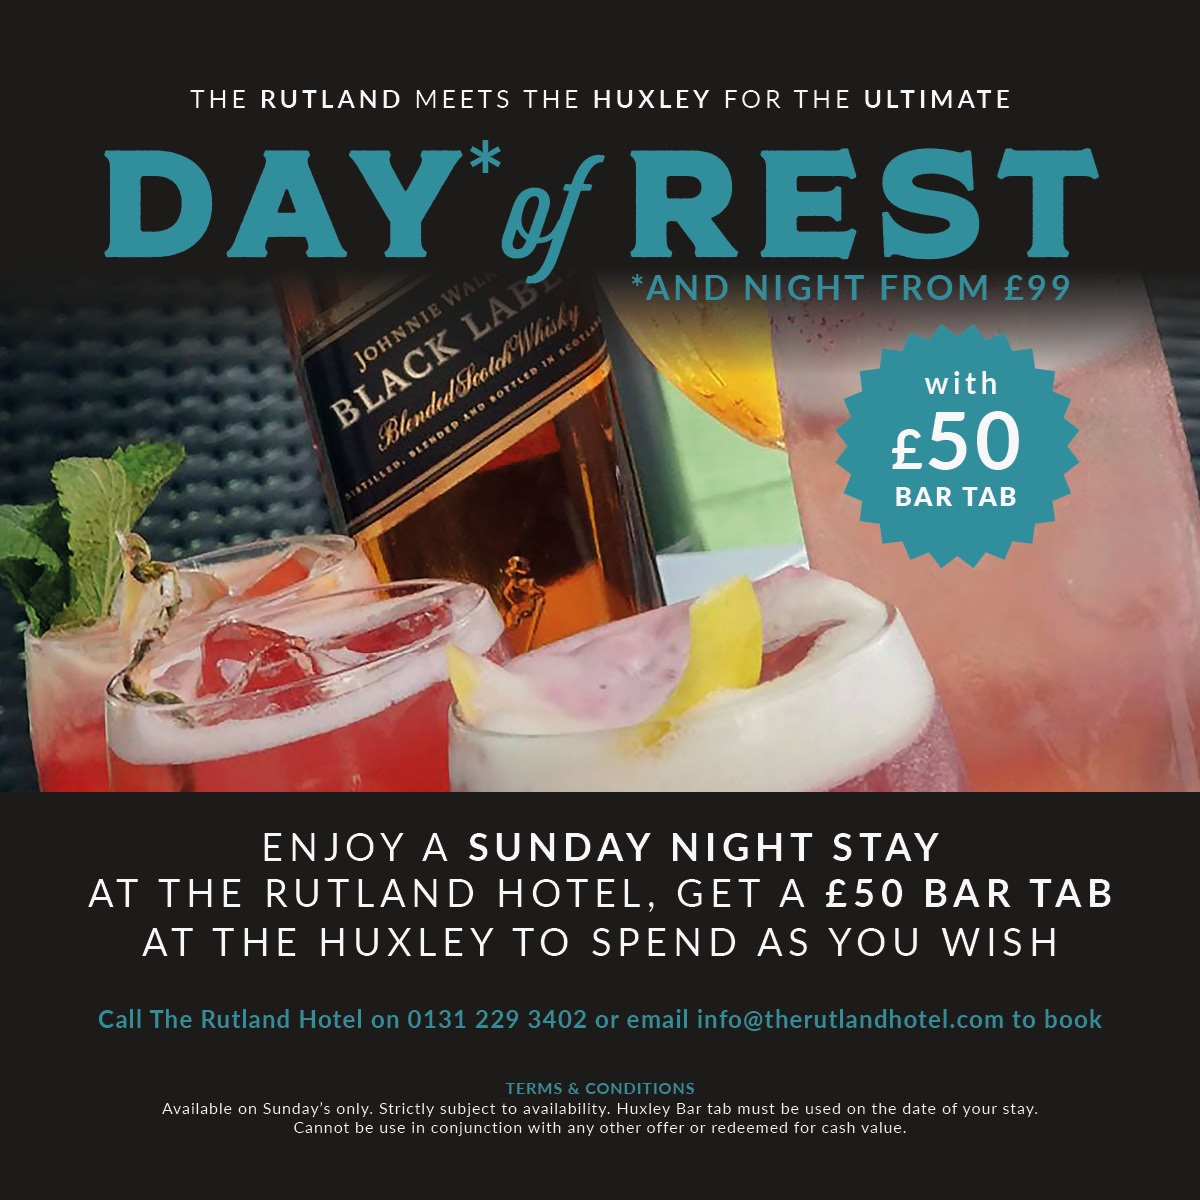 Rutland Hotel Day Of Rest Offer